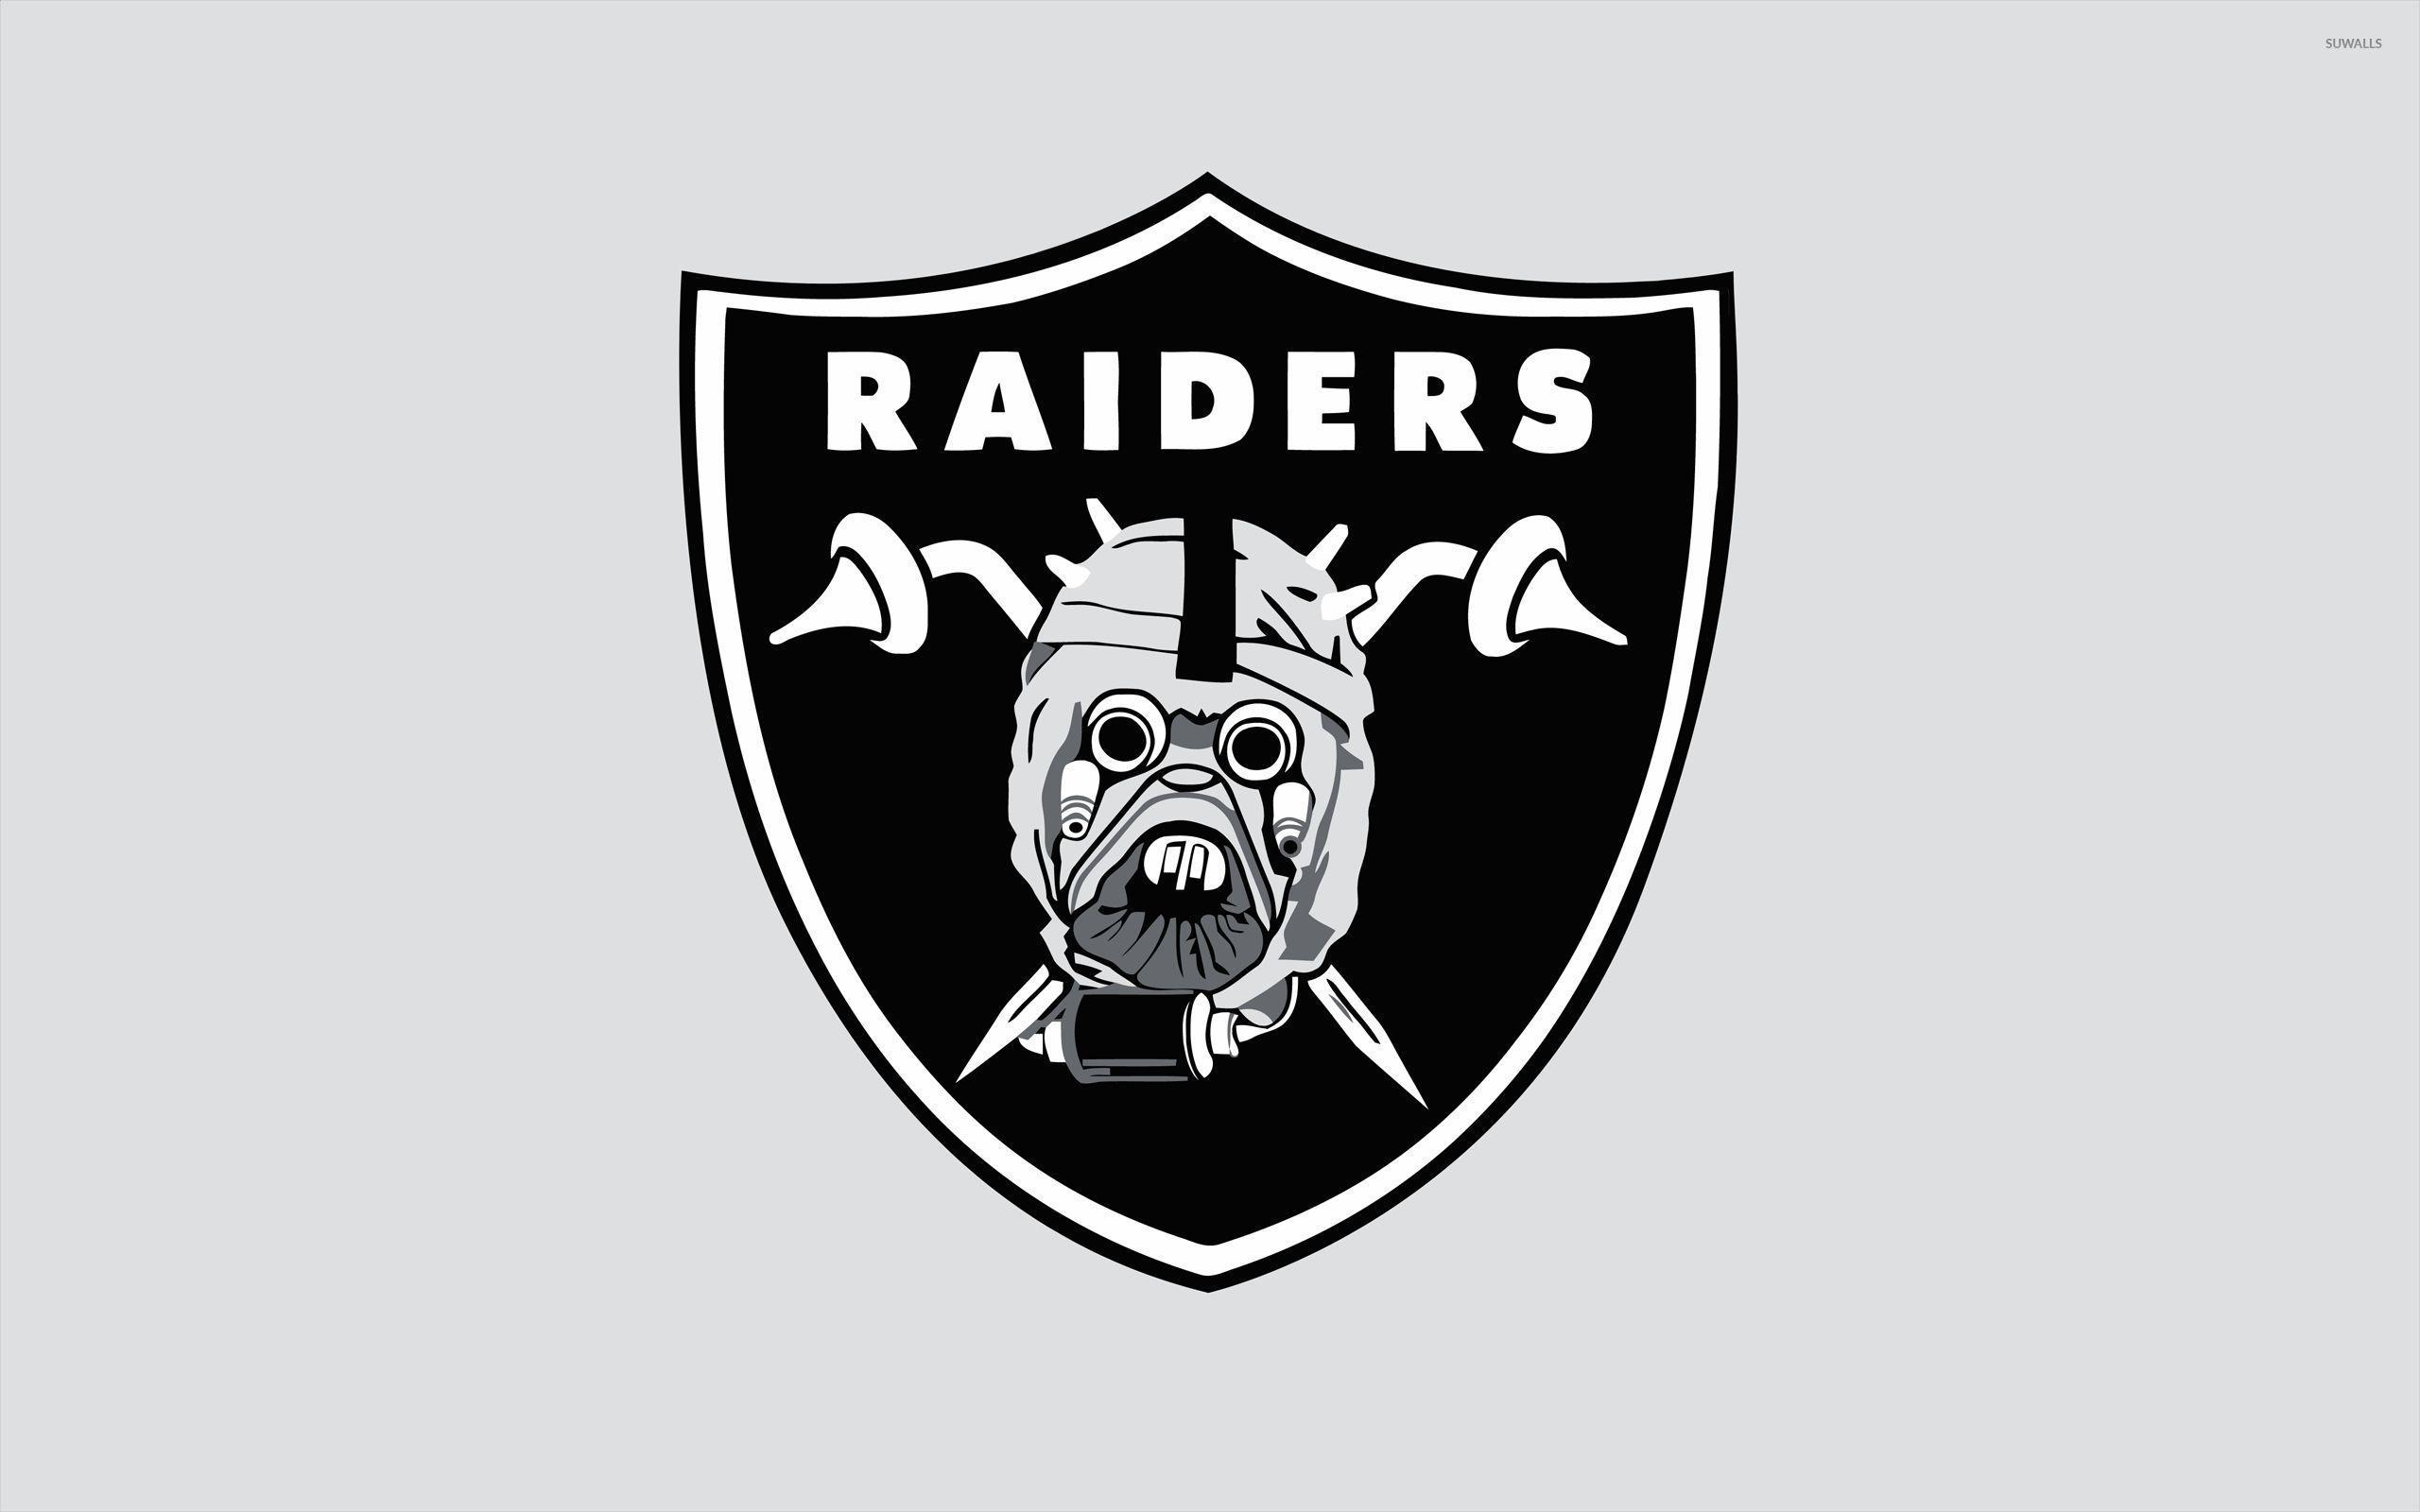 Oakland Raiders wallpaper - Sport wallpapers - #42666